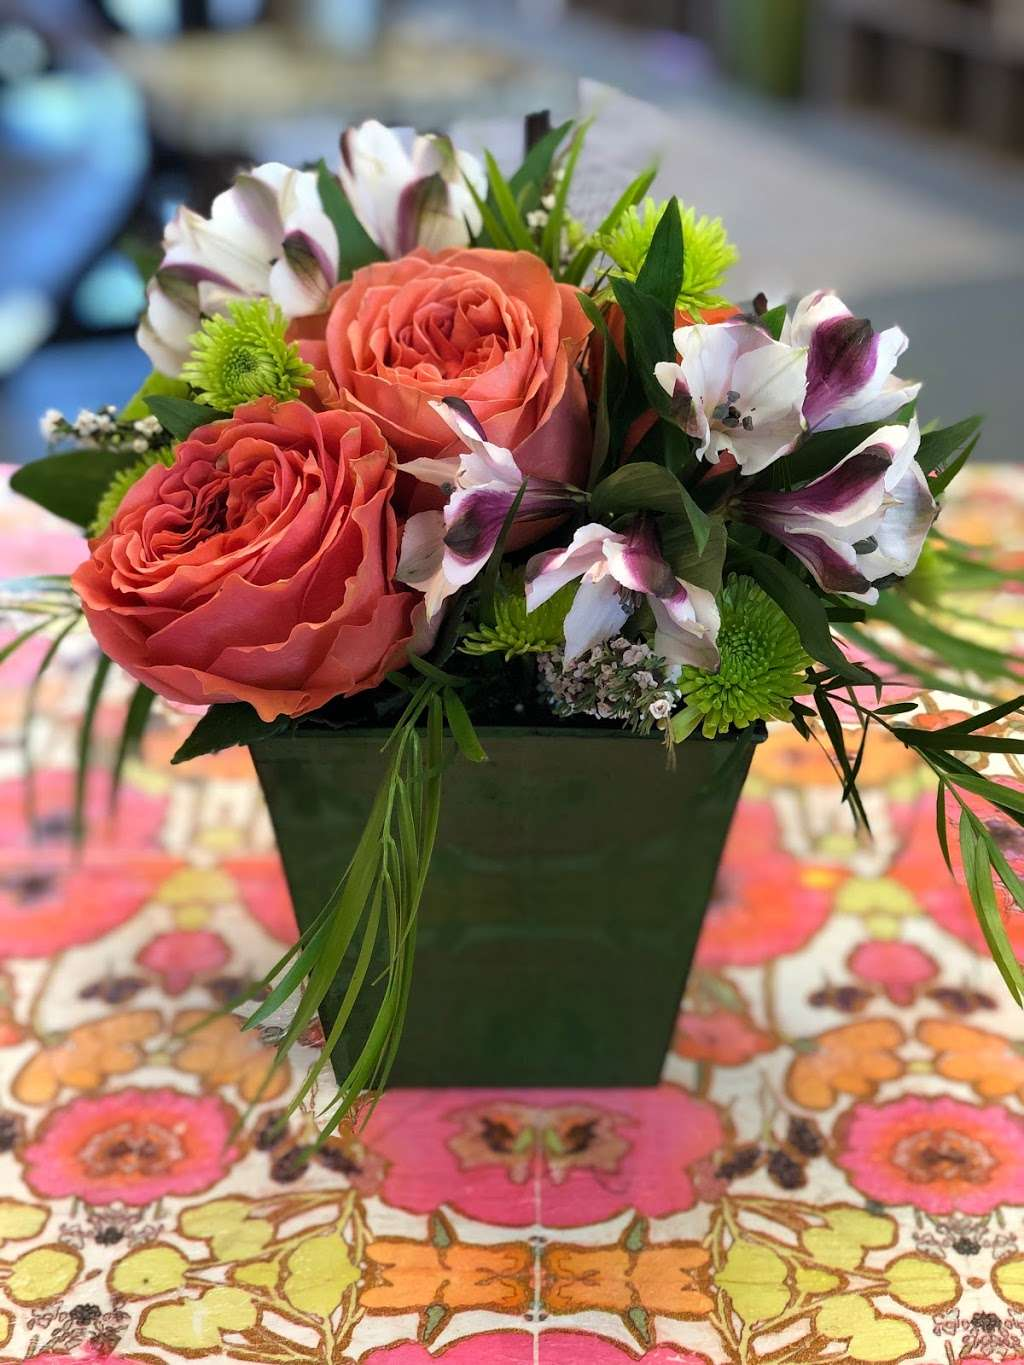 Desert Poppy, LLC - florist  | Photo 5 of 10 | Address: 8880 E Vía Linda Suite 113, Scottsdale, AZ 85258, USA | Phone: (480) 272-7973